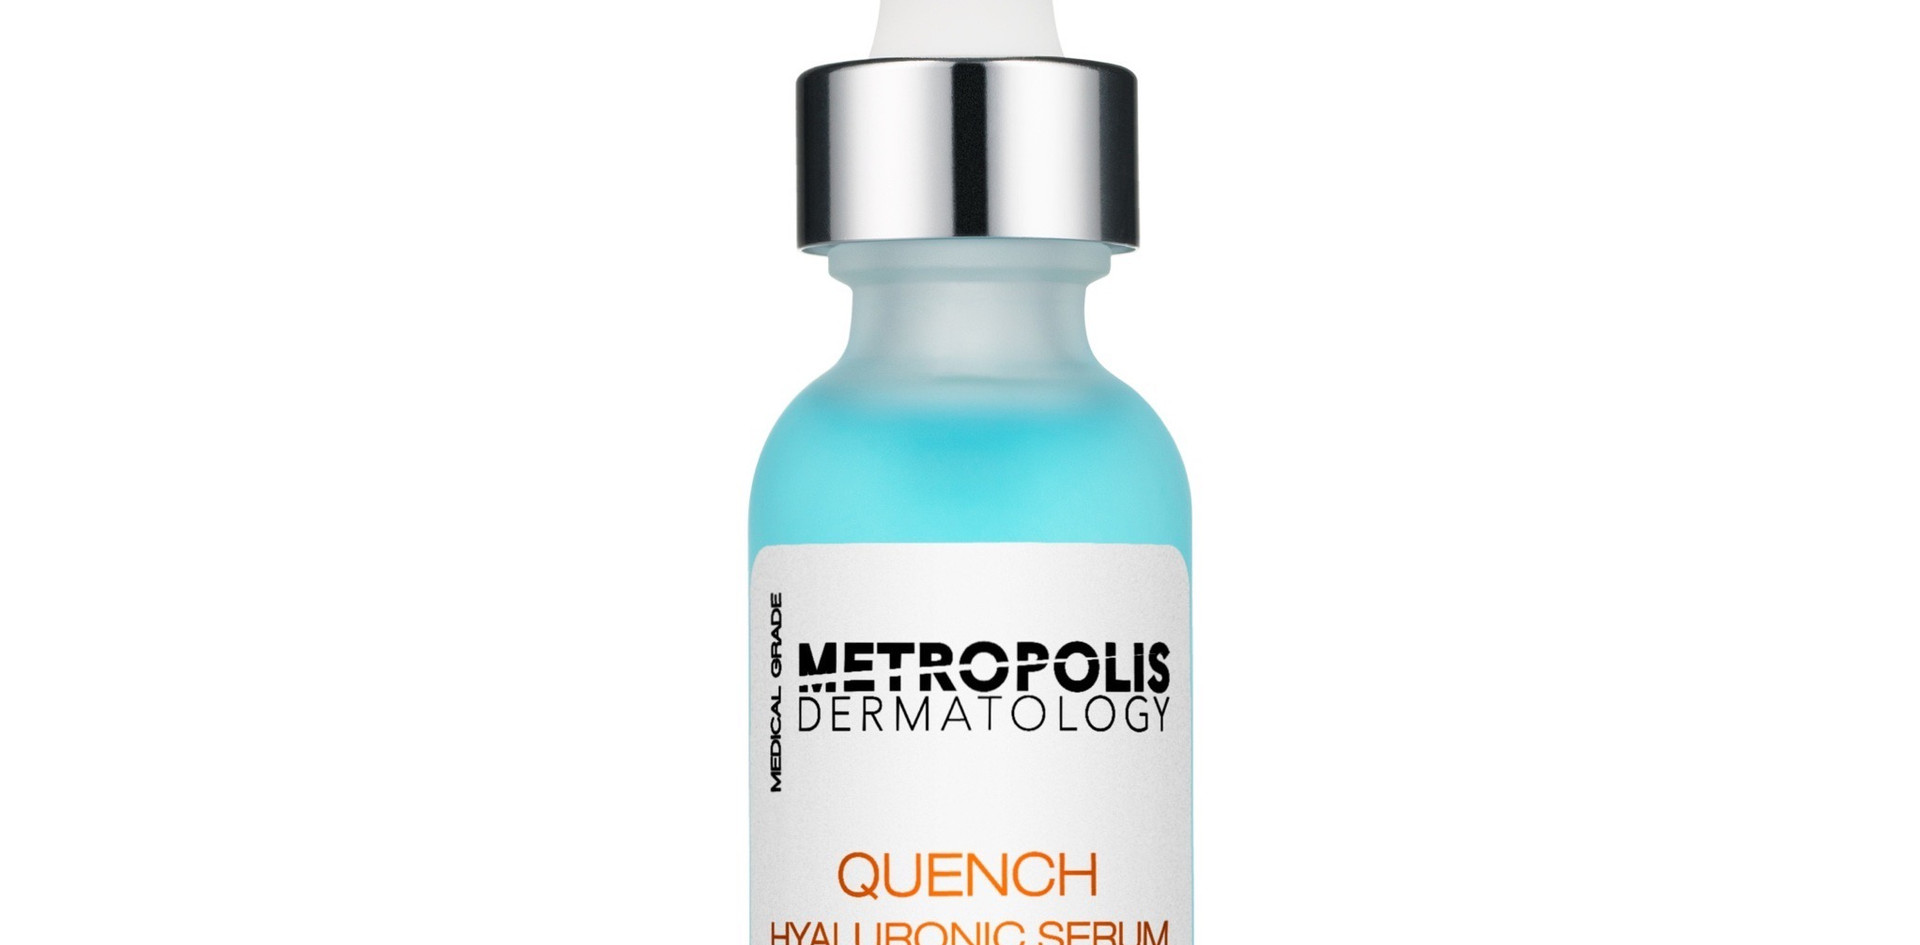 Quench Hyaluronic Serum